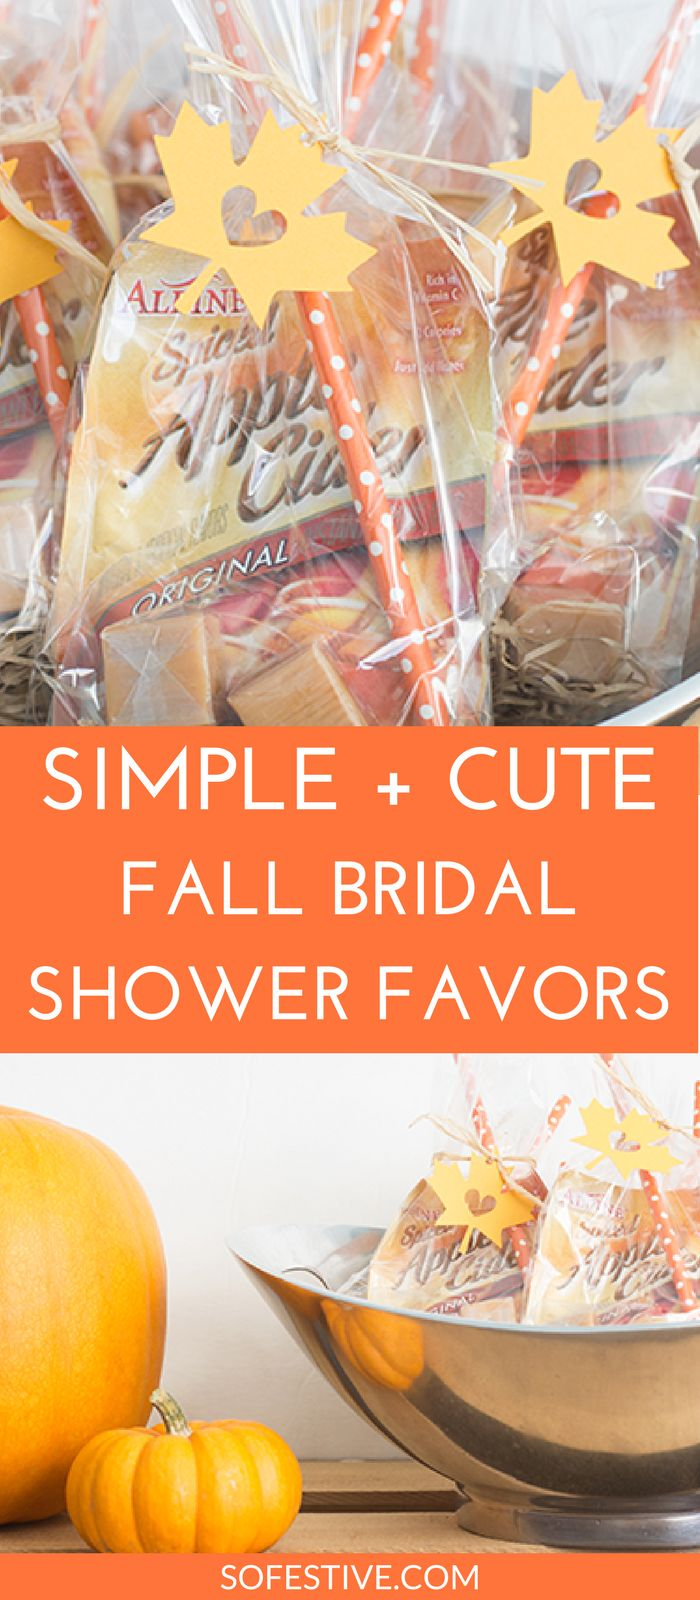 Best 25 bridal shower fall ideas on pinterest halloween bridal showers bridal shower favors - Bridal shower theme ideas for fall ...